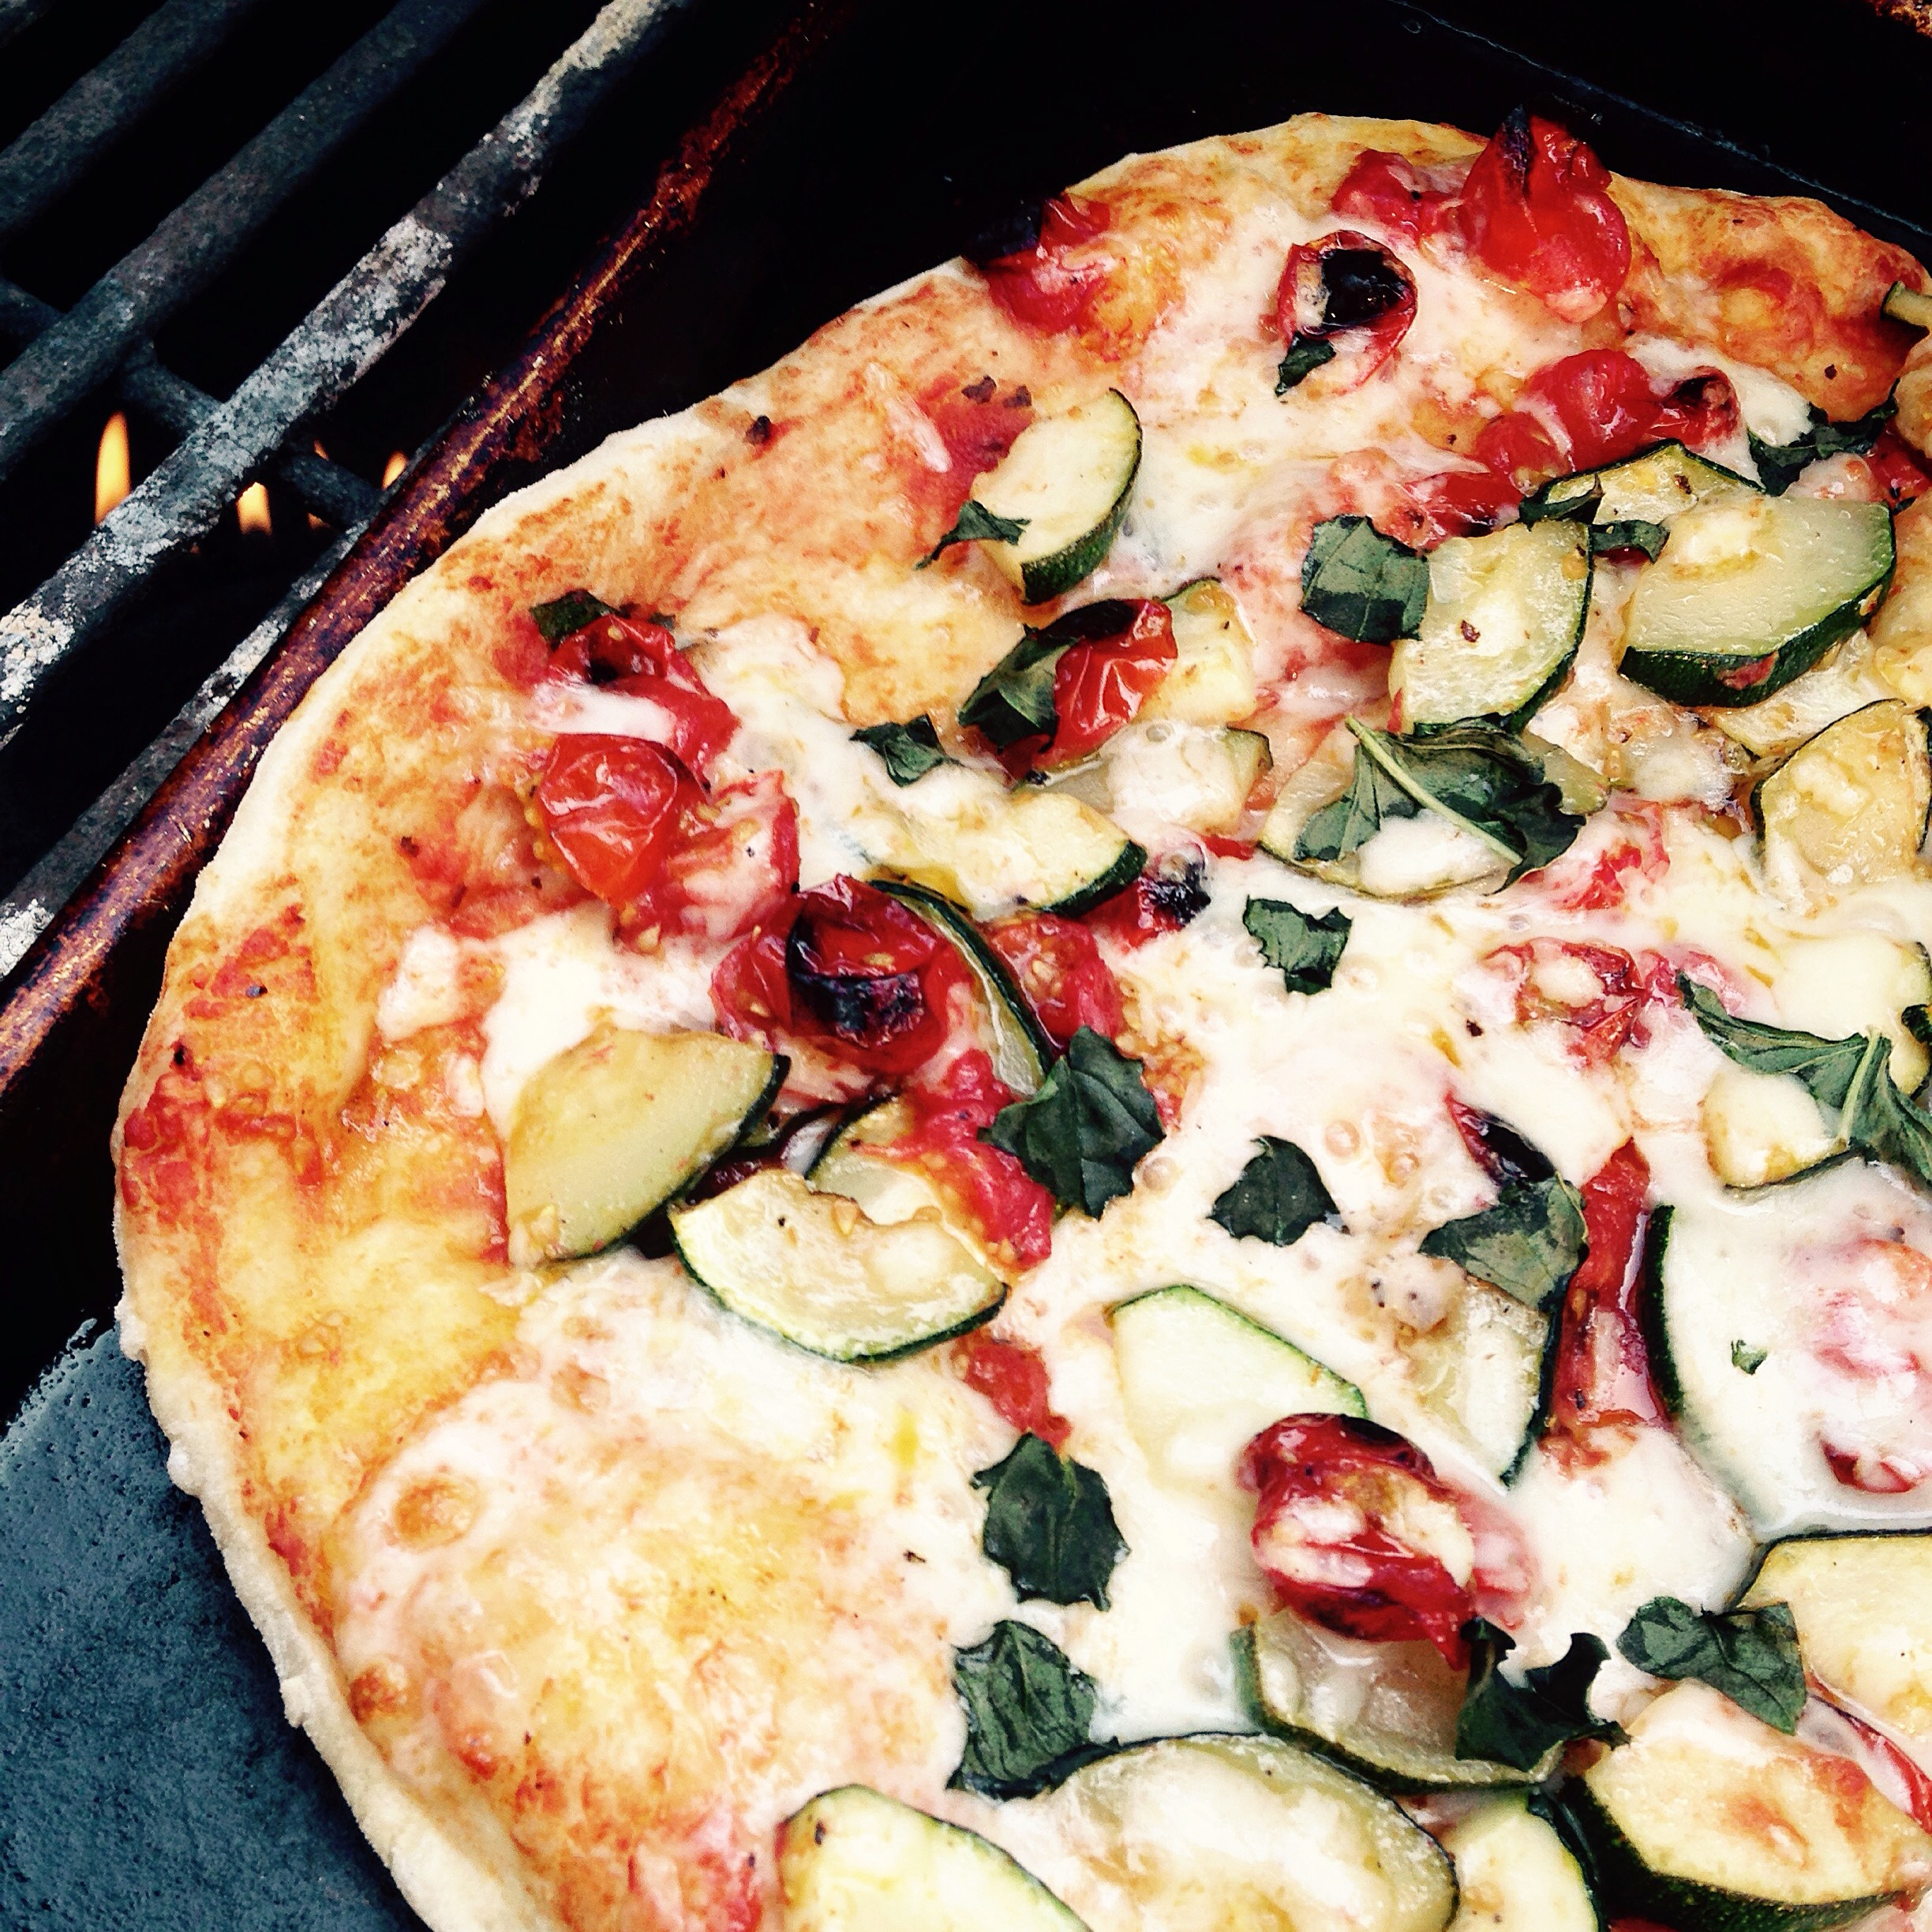 homemade zucchini tomato basil pizza on the grill